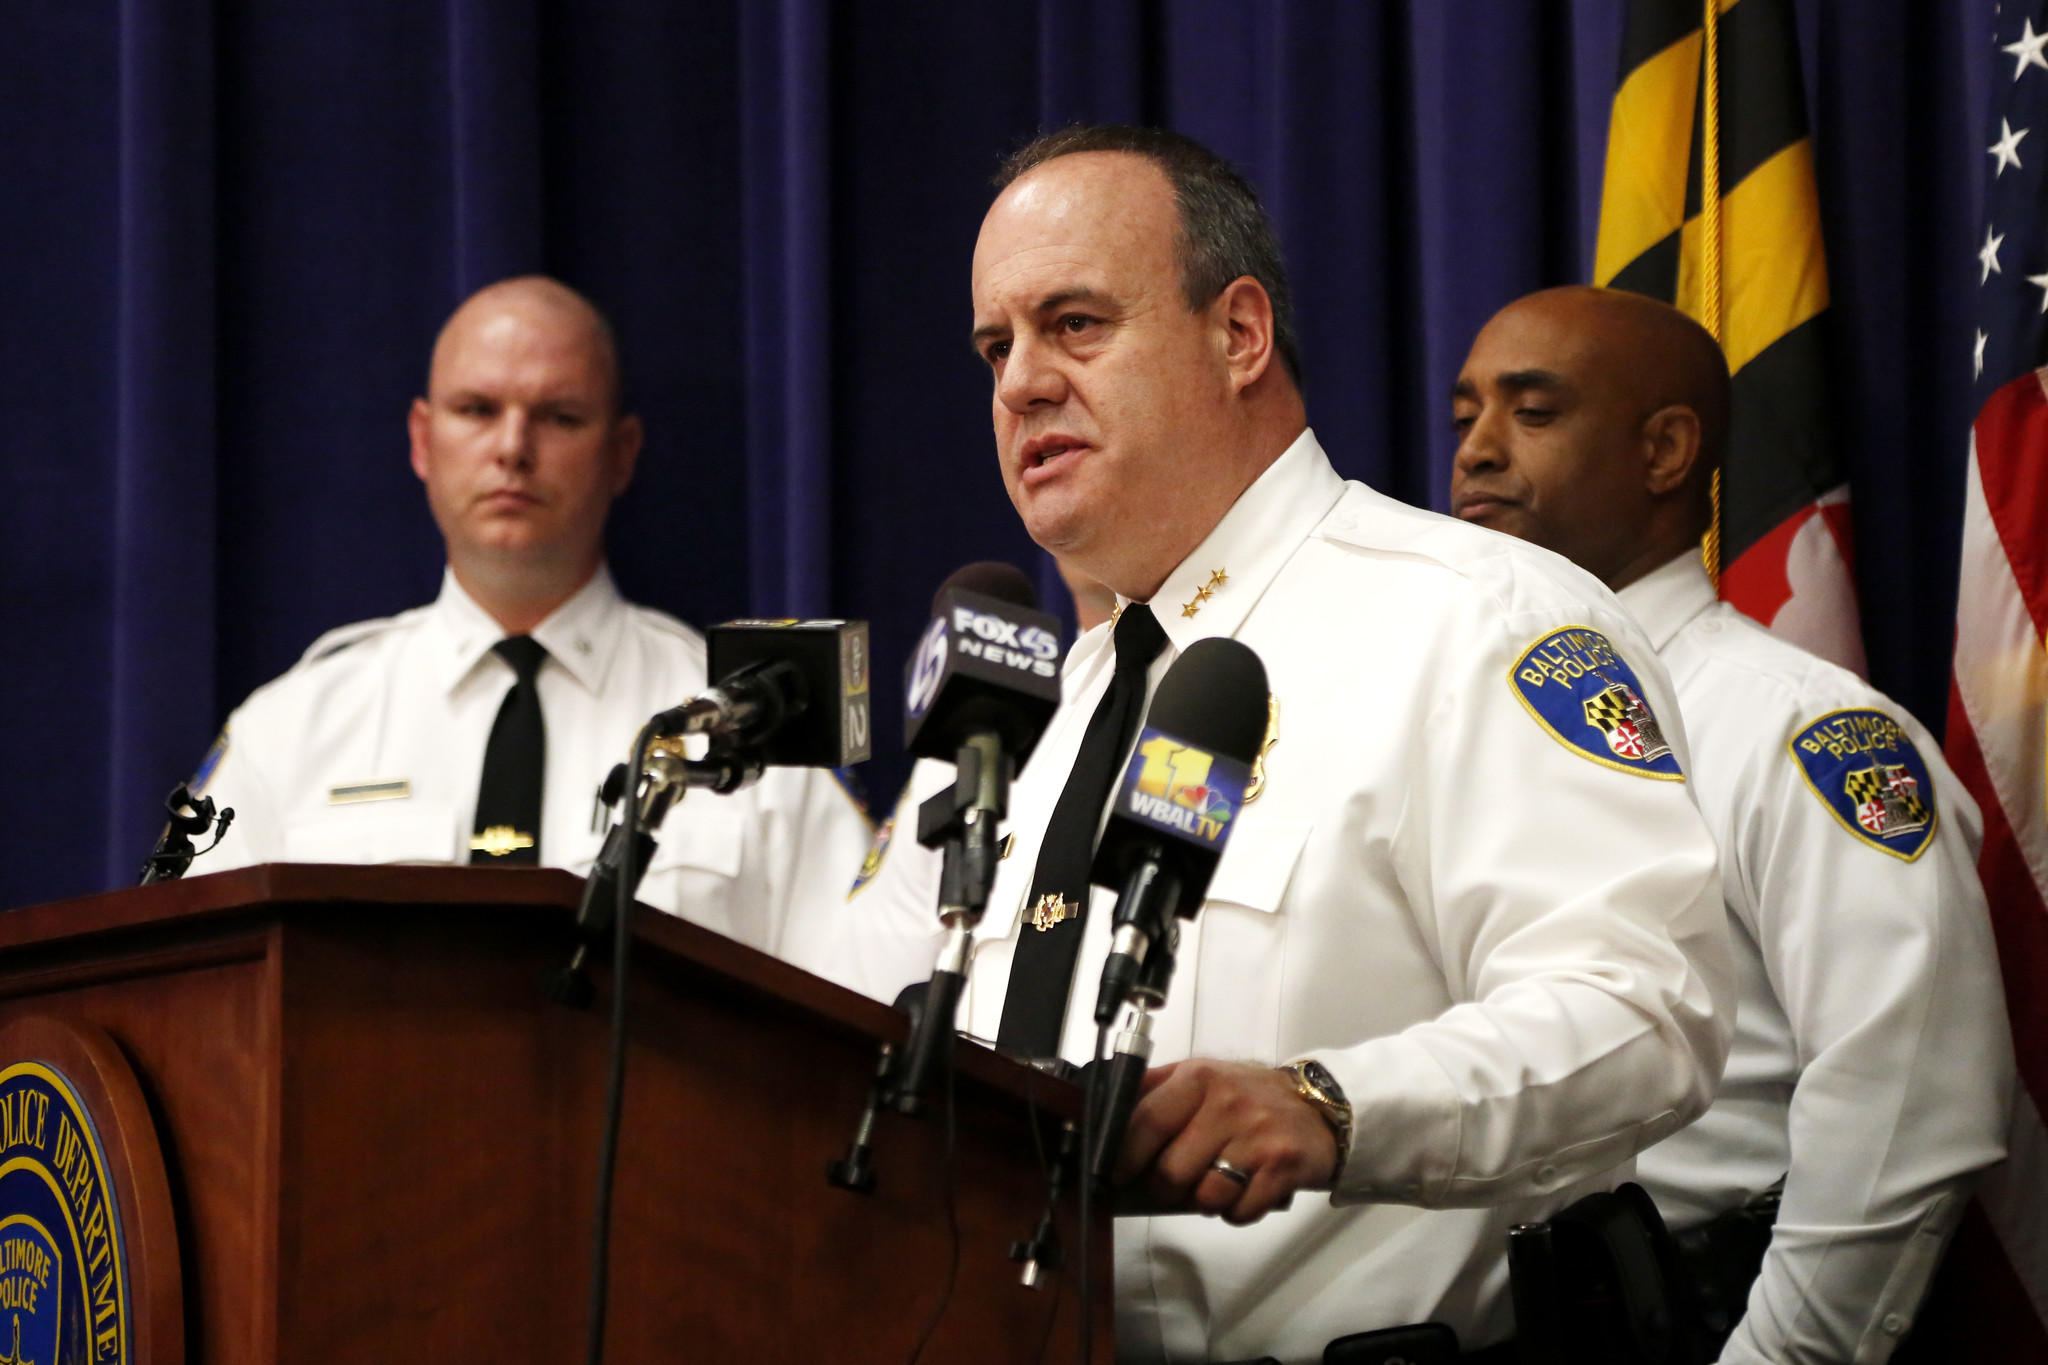 Deputy Police Commissioner Jerry Rodriguez speaks during the press conference held on Friday regarding police conduct at Police Headquarters.